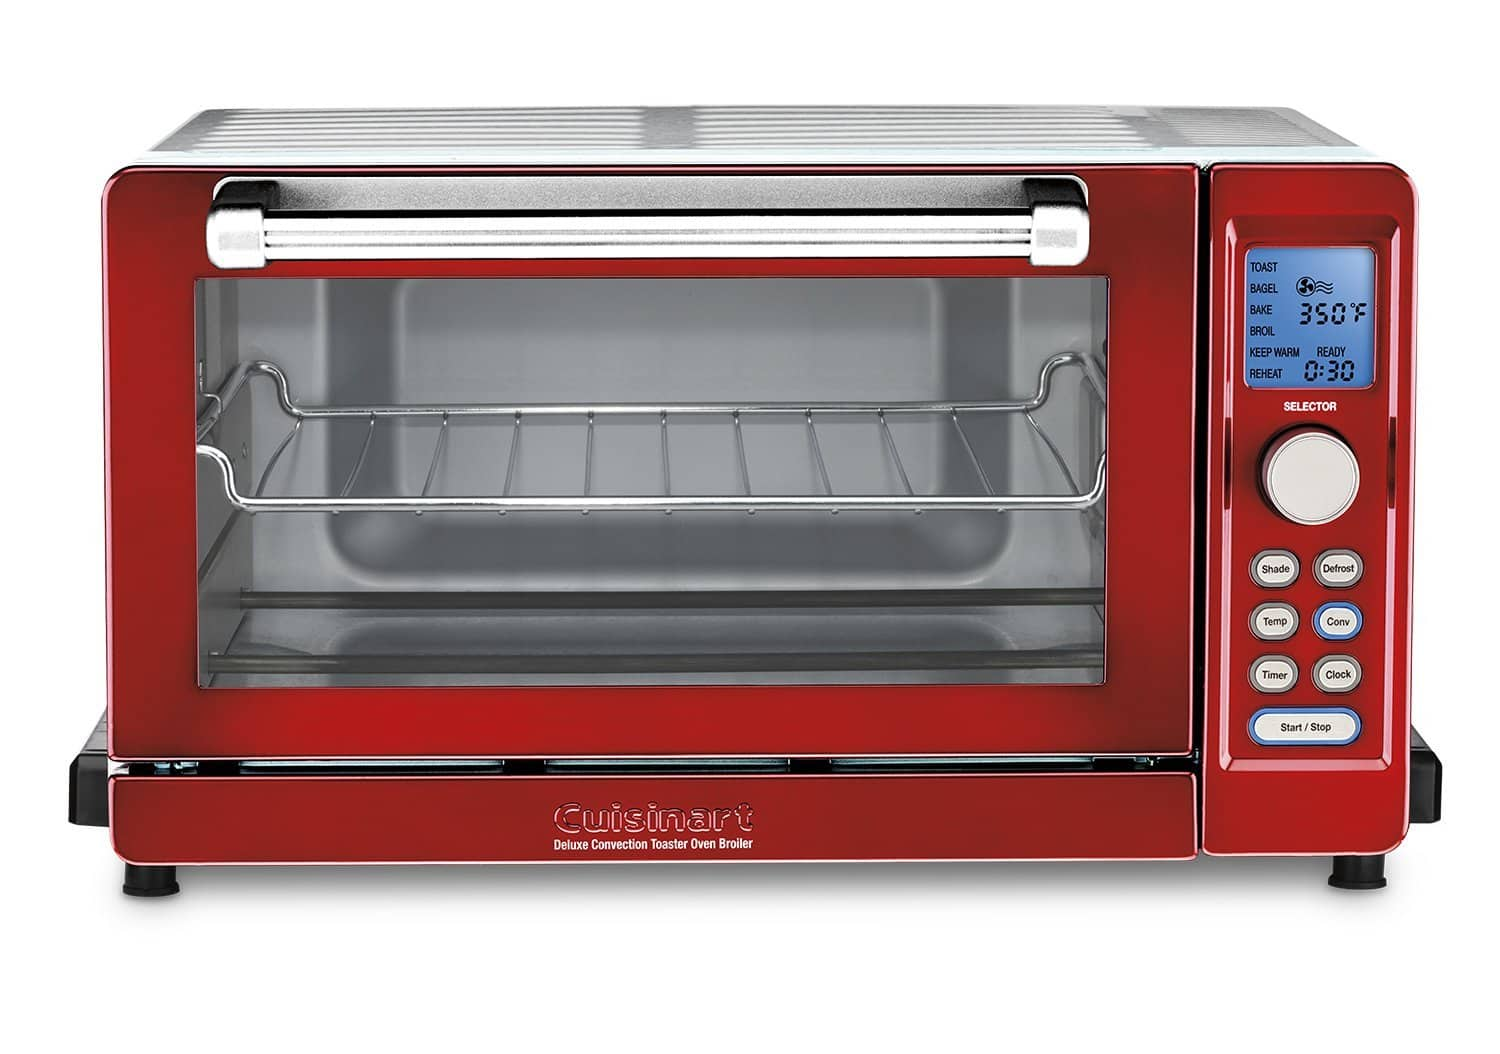 Cuisinart TOB-135 Deluxe Convection Toaster Oven Broiler (red) for $99 with free shipping